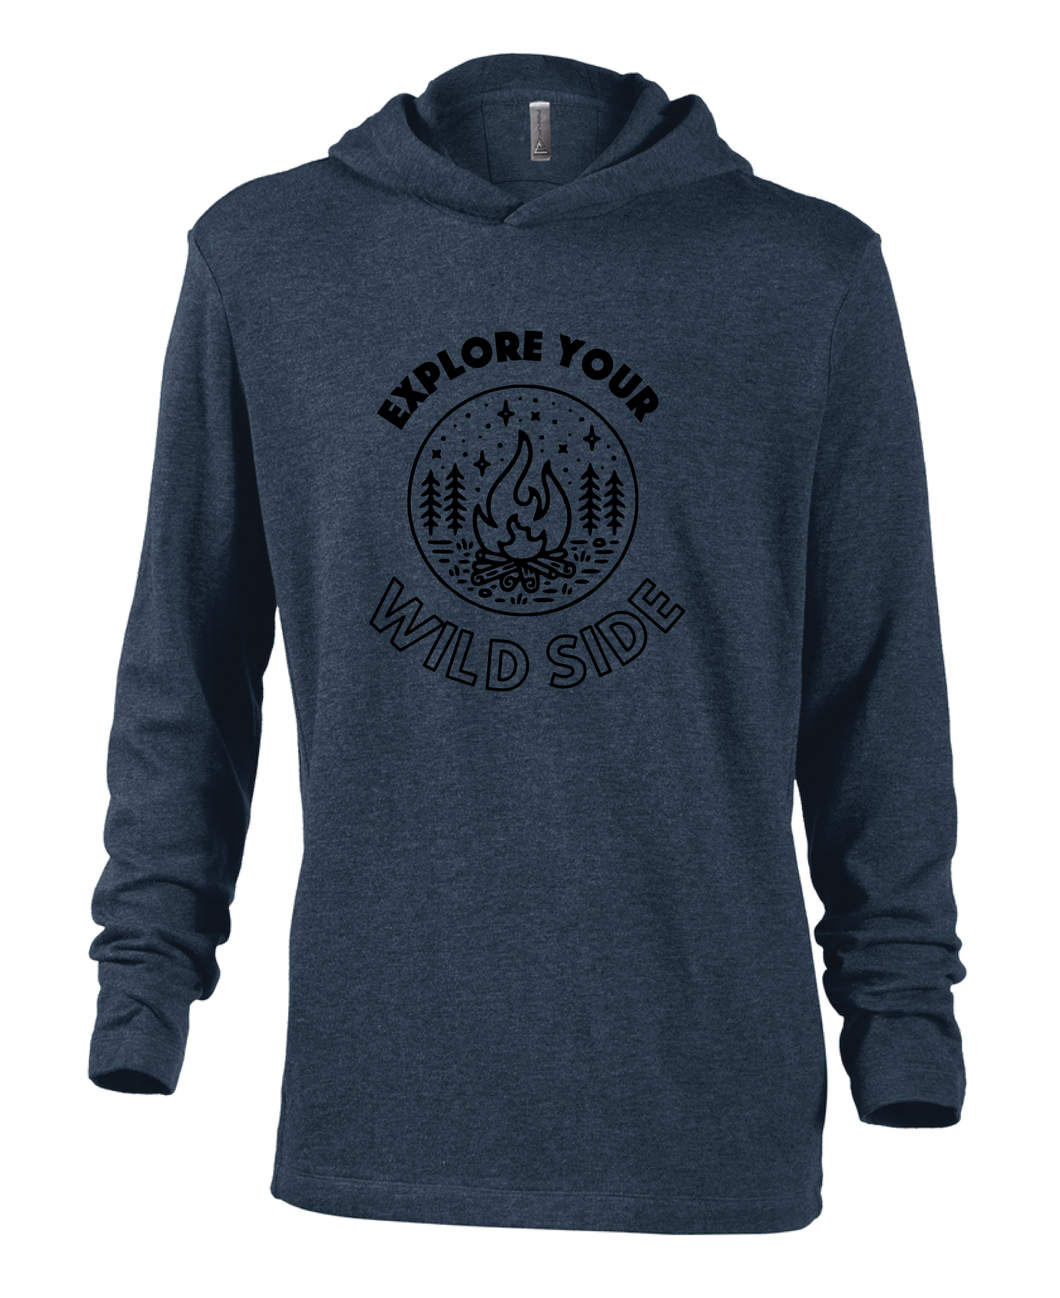 Sweatshirt- Explore Your Wild Side